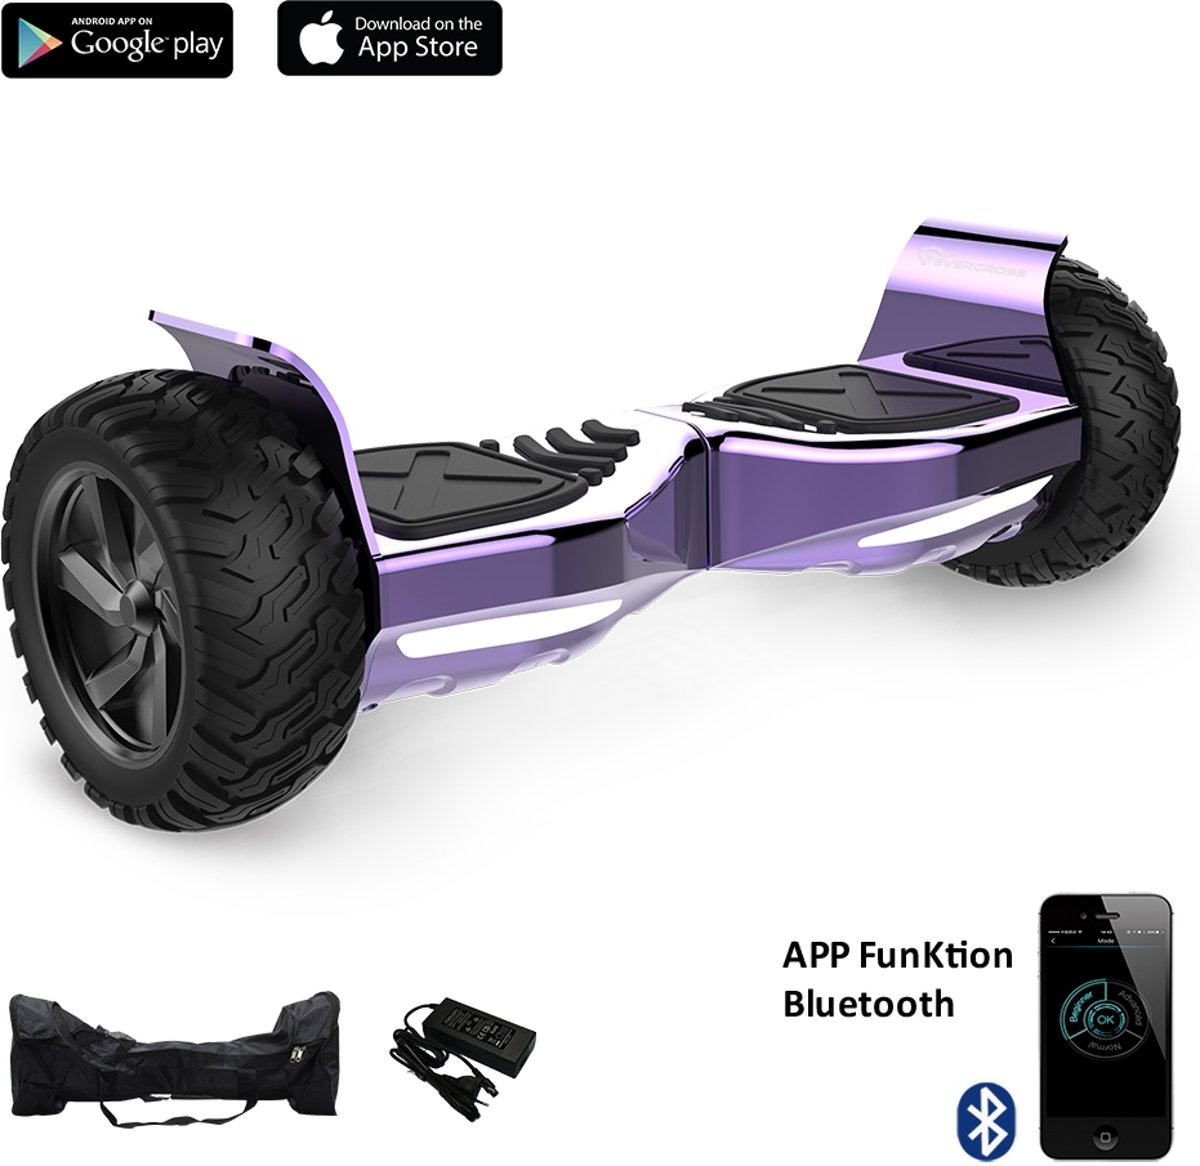 Evercross Challenger Basic 2018 Best 8.5 inch SUV Hoverboard met APP Functie 700W Motion V.5 Bluetooth speakers en met TAOTAO moederbord